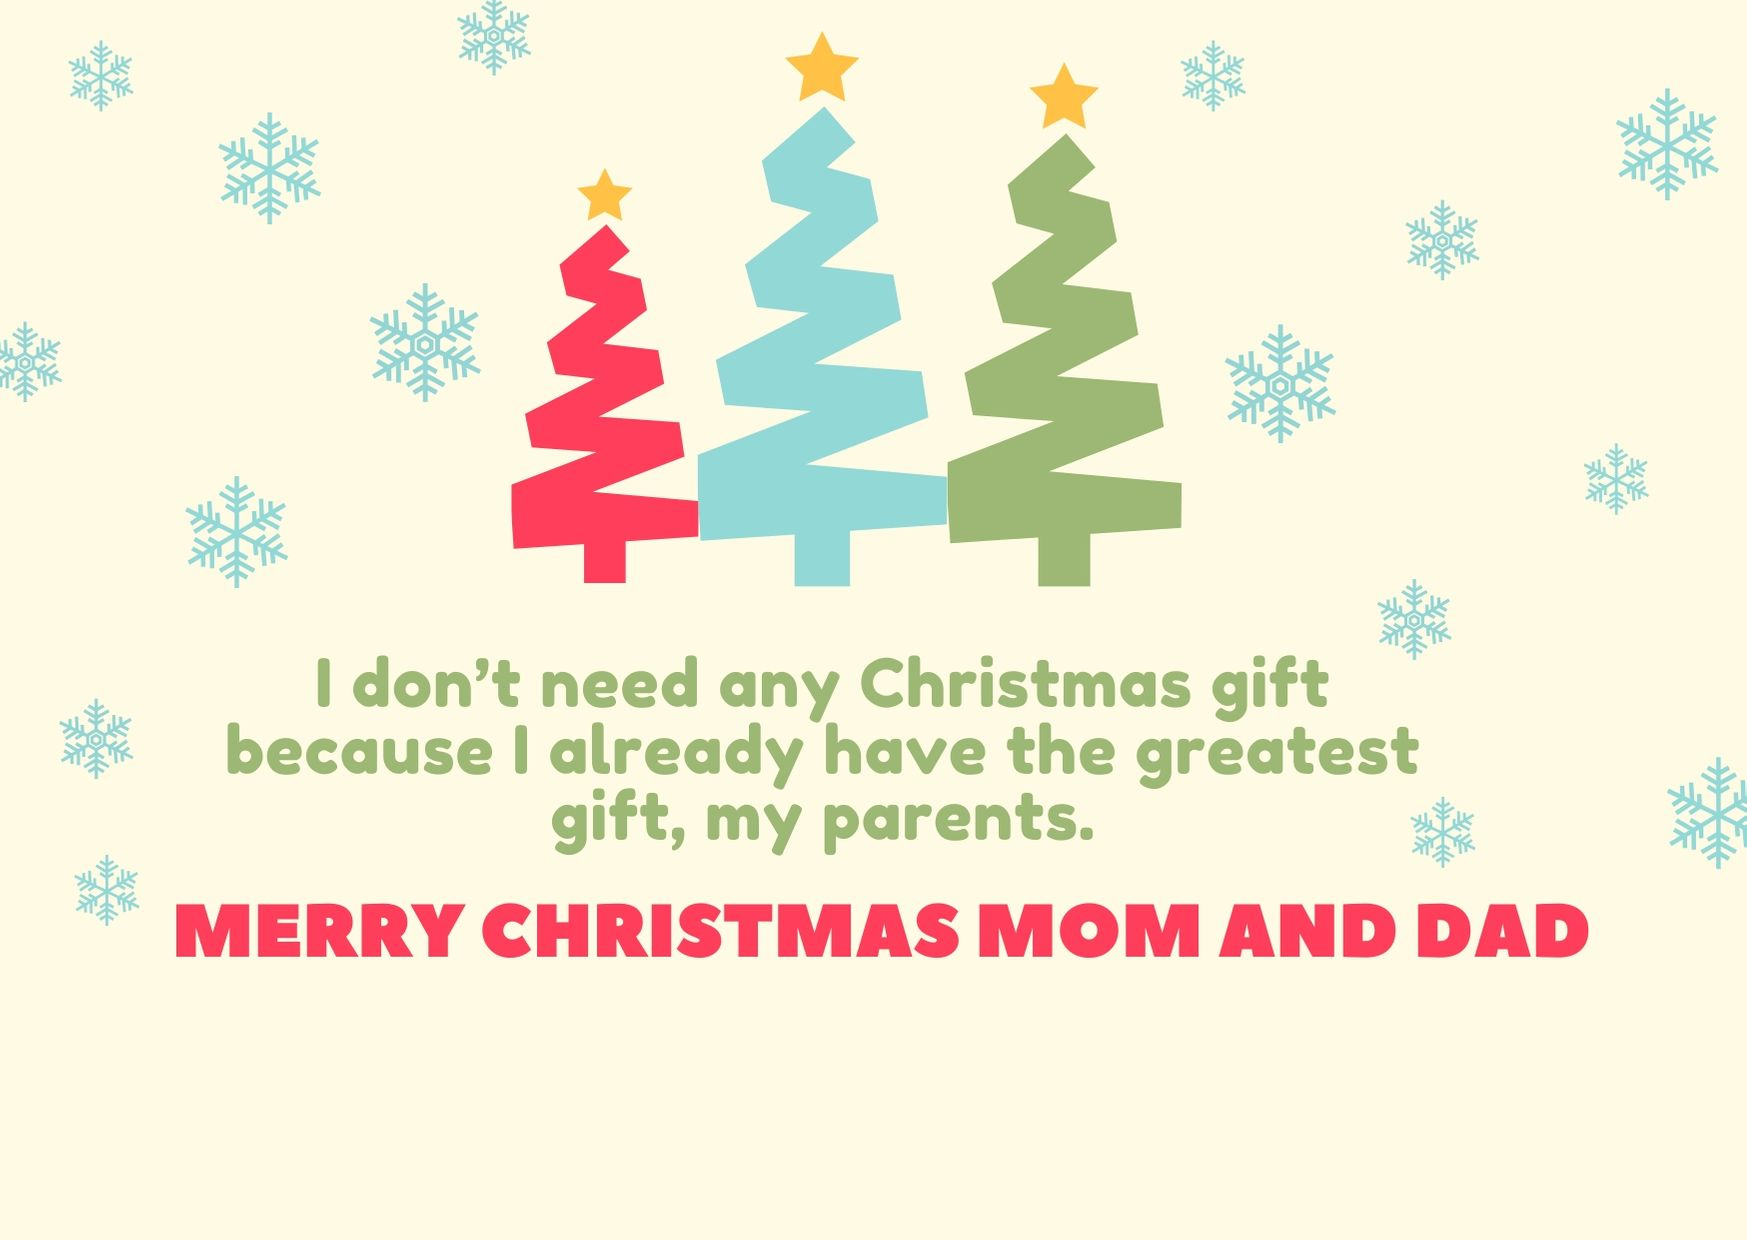 Merry Christmas to my mom and dad